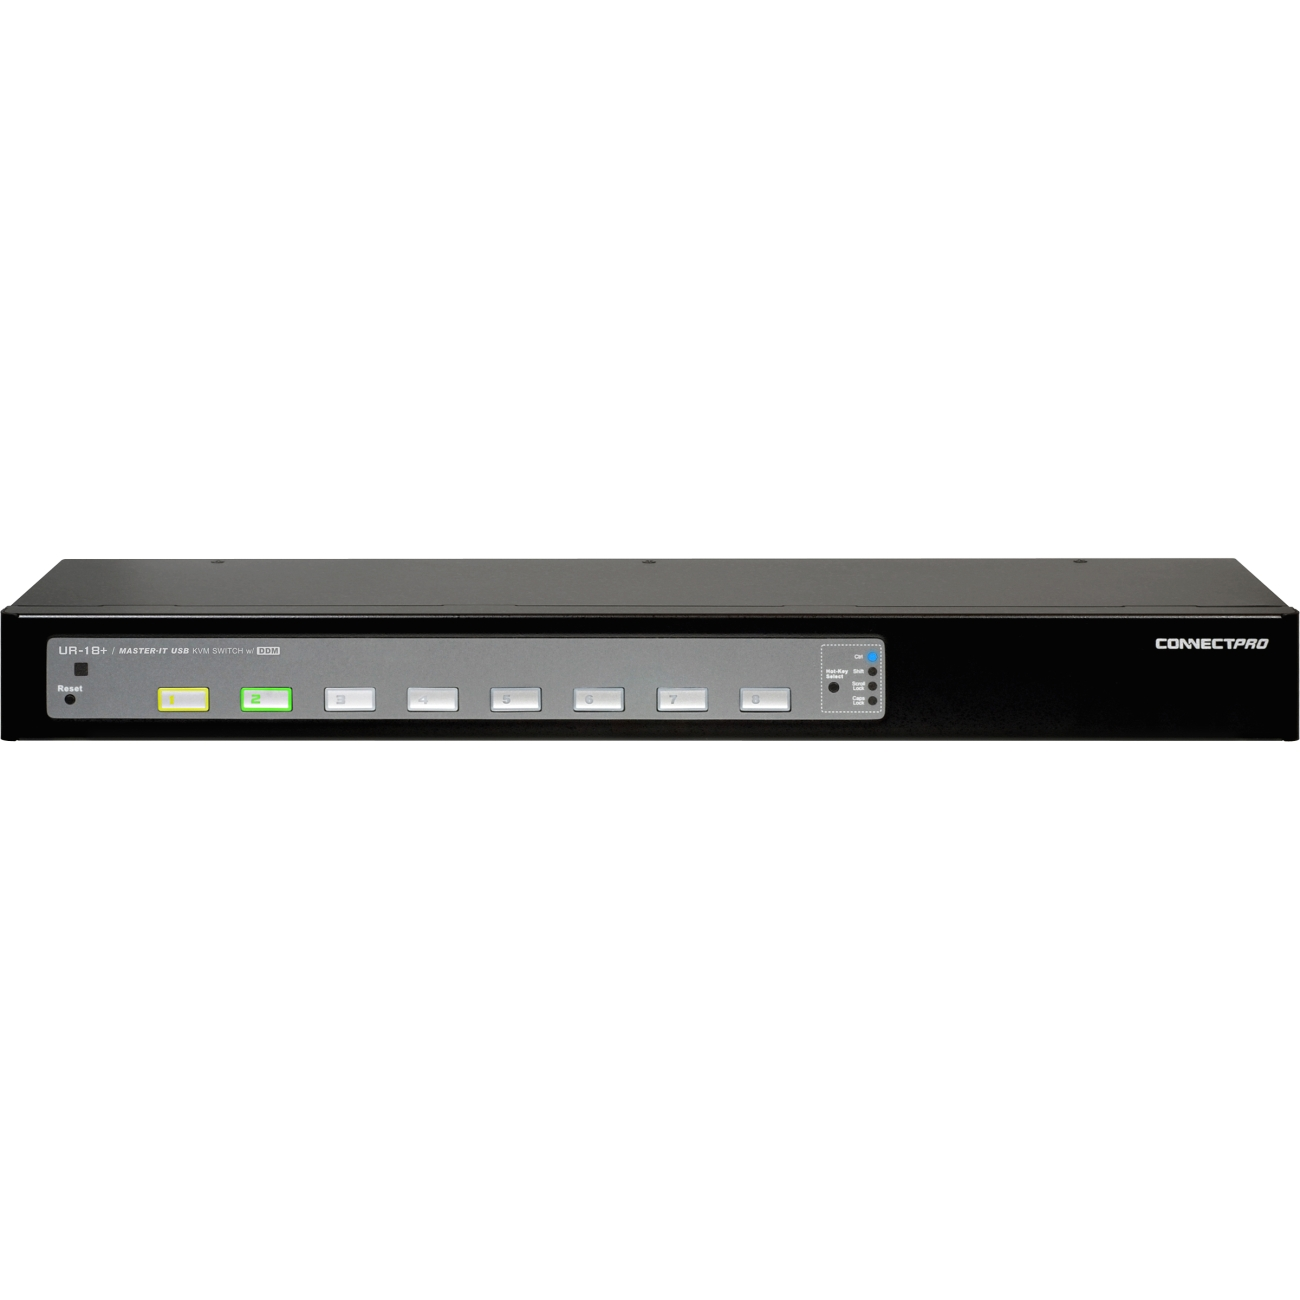 Connectpro Master-it Ur-18-plus Kvm Switch 8 Computer[s] 1920 X 1200 11 X Usb9 X Vga Rack-mountable... by ConnectPRO